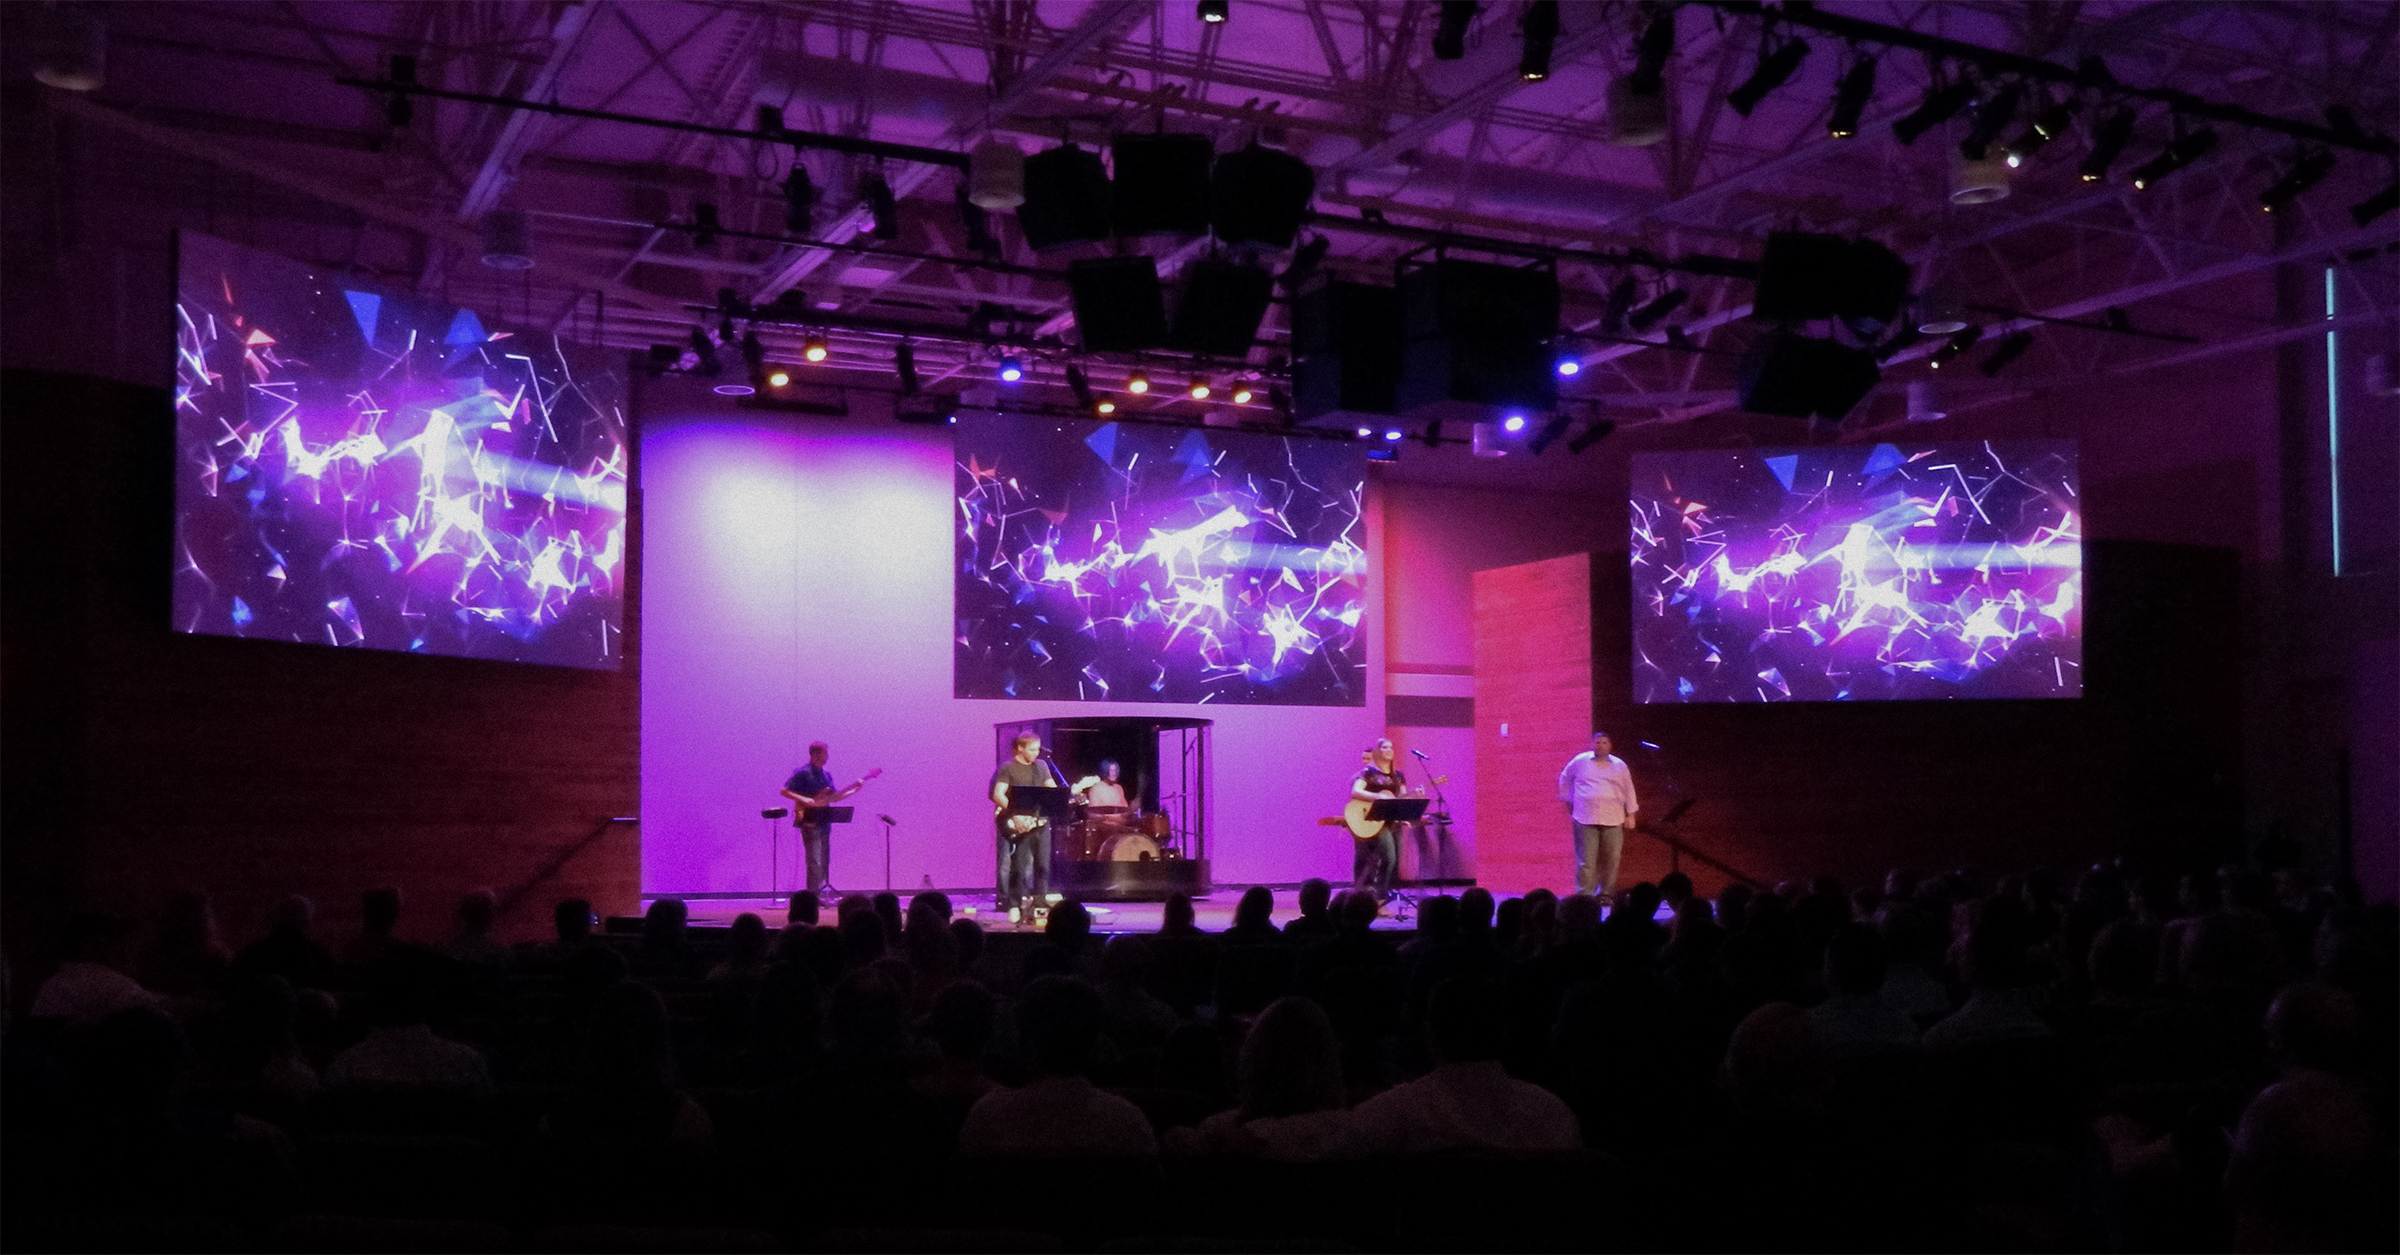 Chase Oaks Church Worship Center multiple LED walls in Fairview Texas. Installed by Infinity Sound of Grand Prairie Texas.